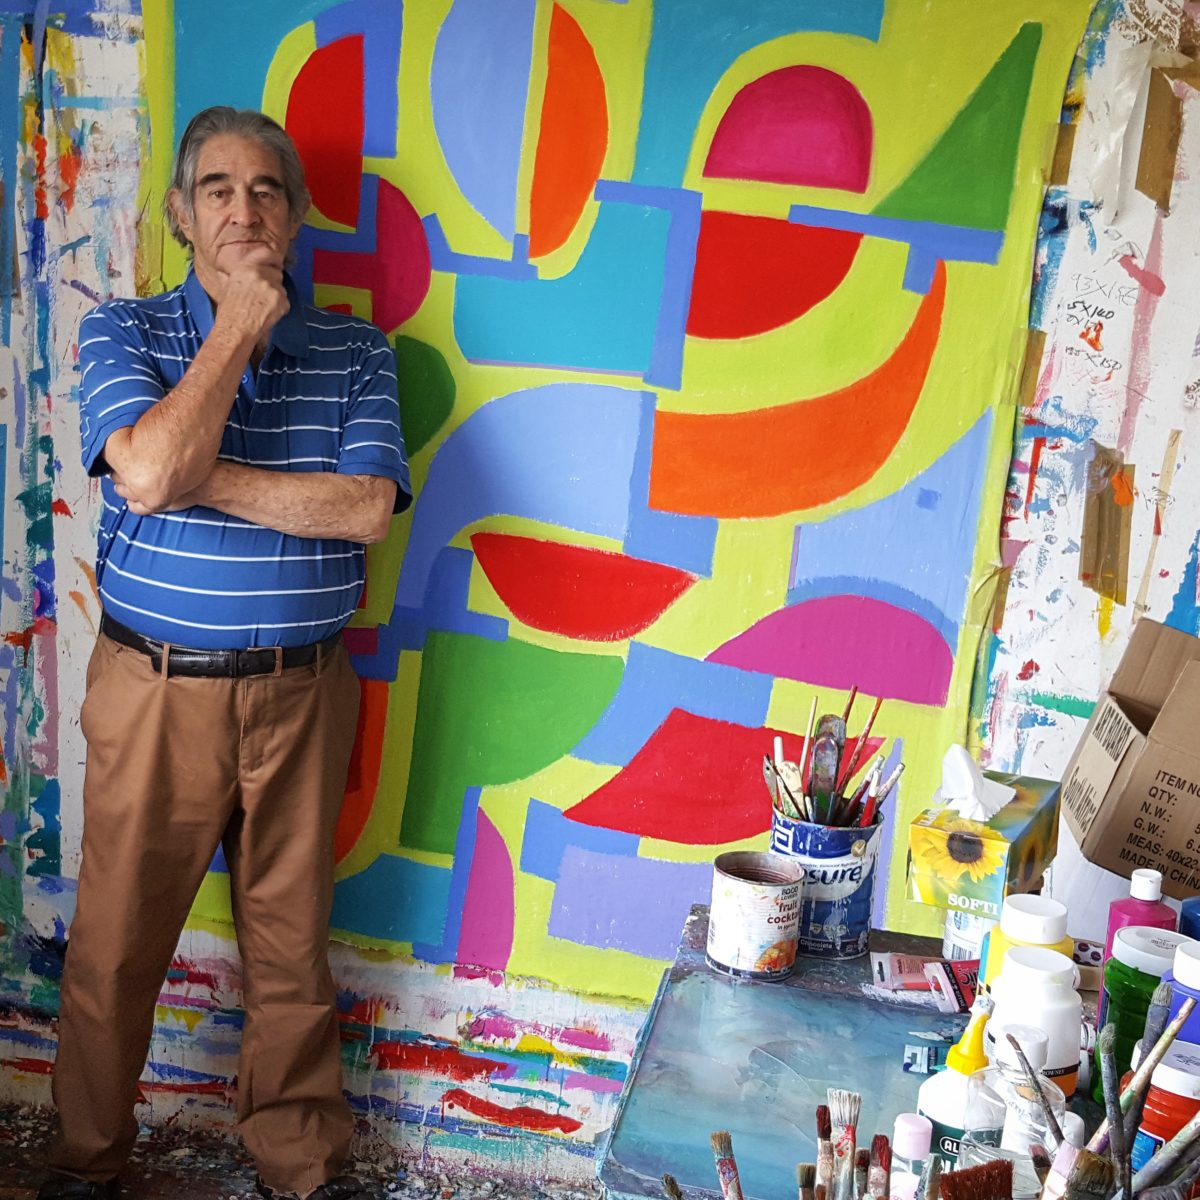 Artist Trevor Coleman proves success can come at any age 08 November 2015 – 02:00 BY OLIVER ROBERTS